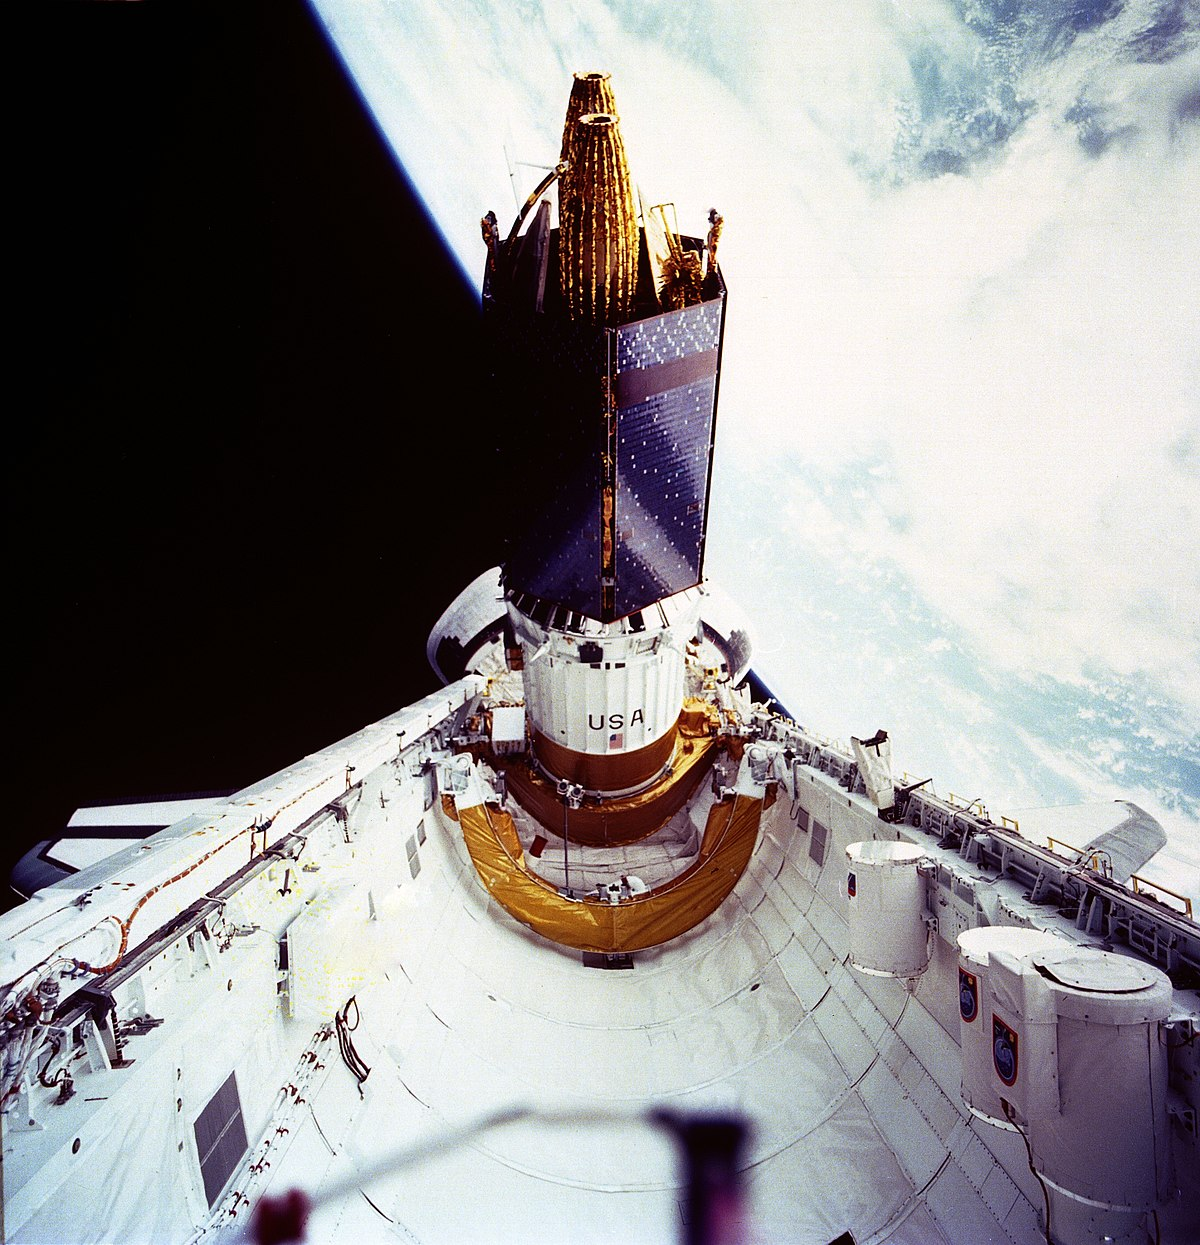 spacecraft and space shuttle difference - photo #25